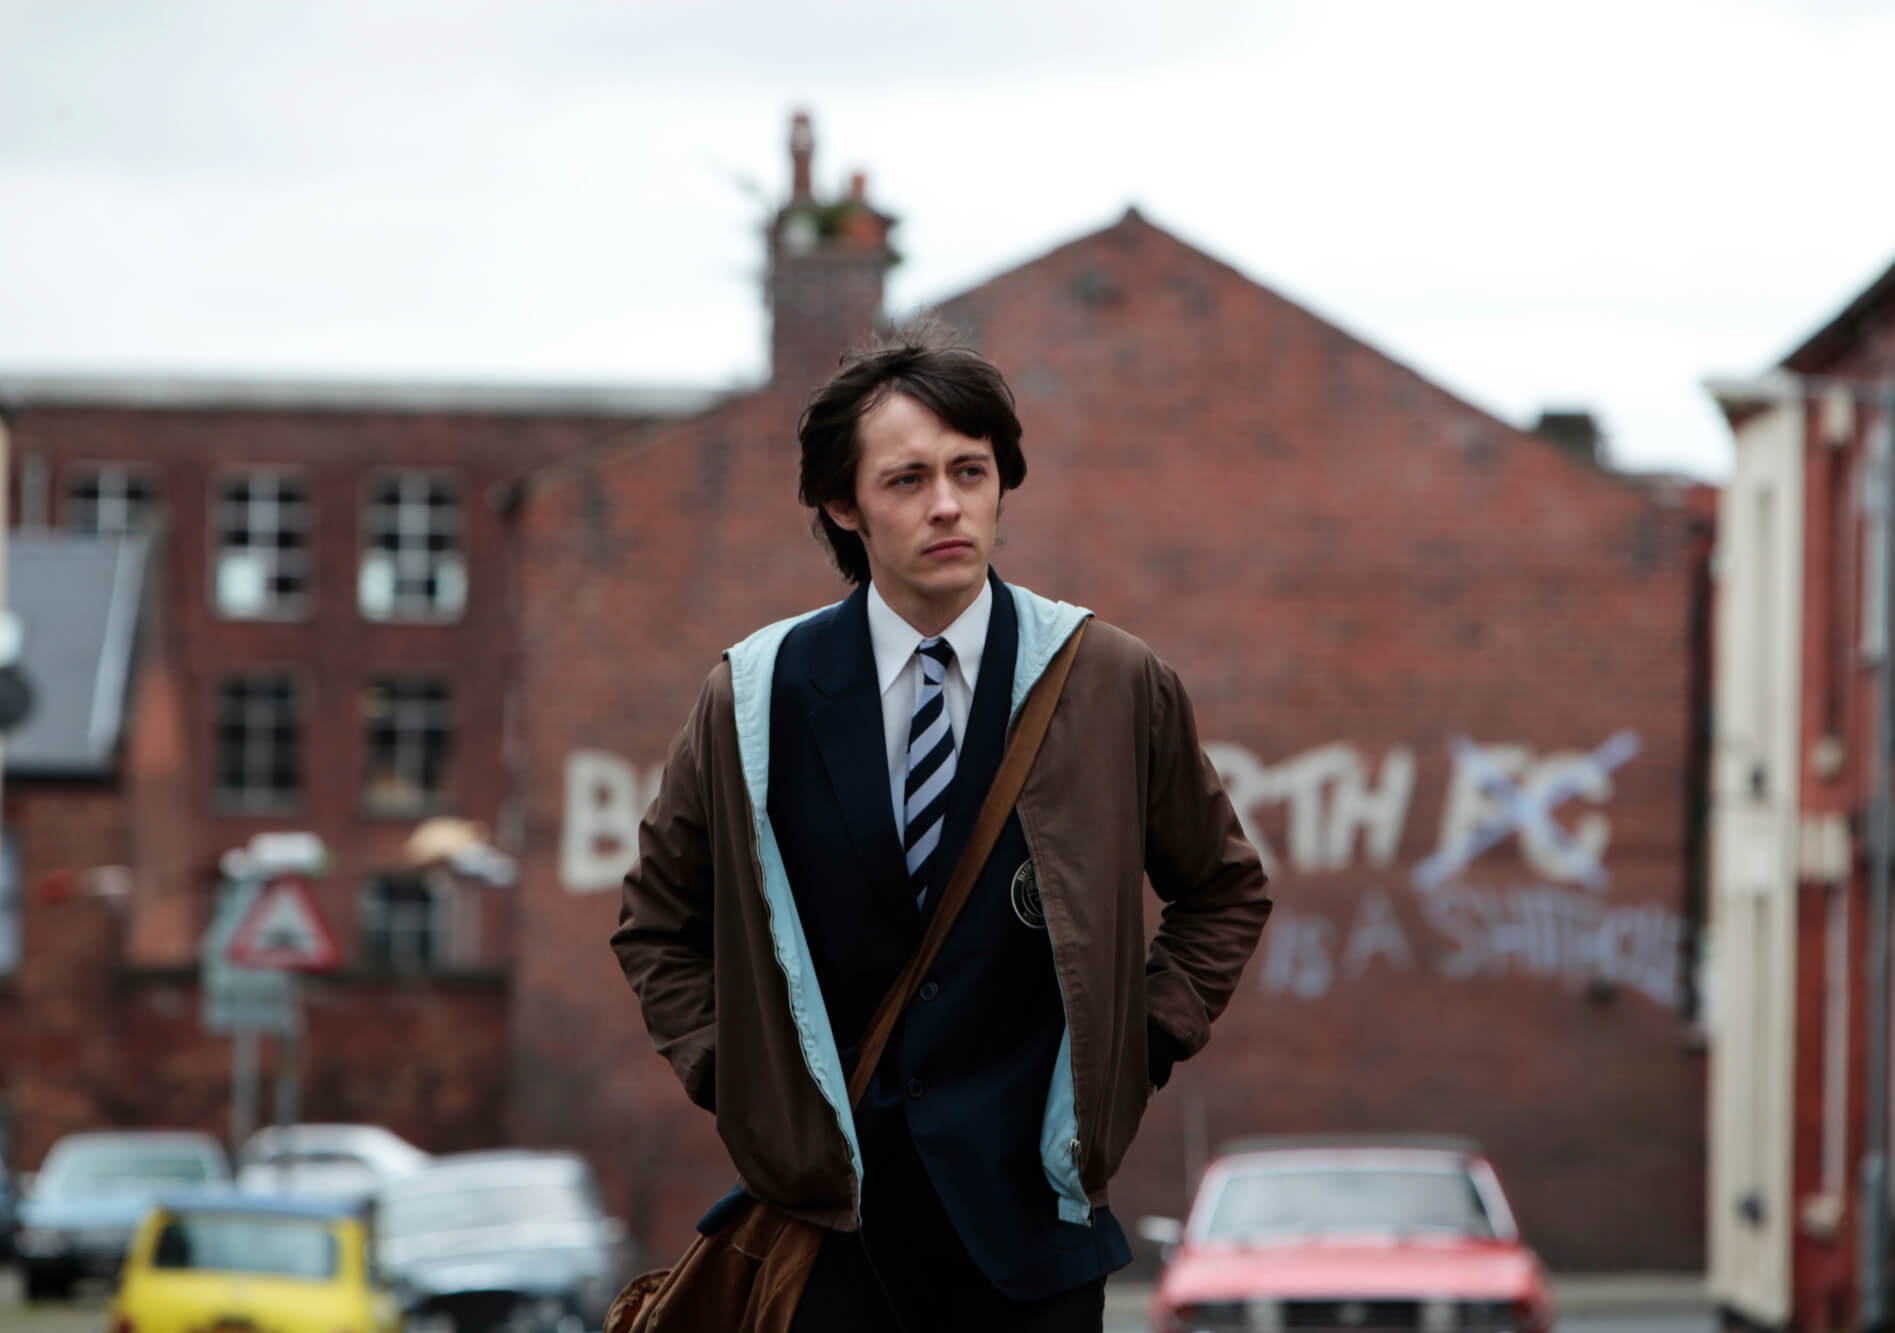 Video still from Northern Soul